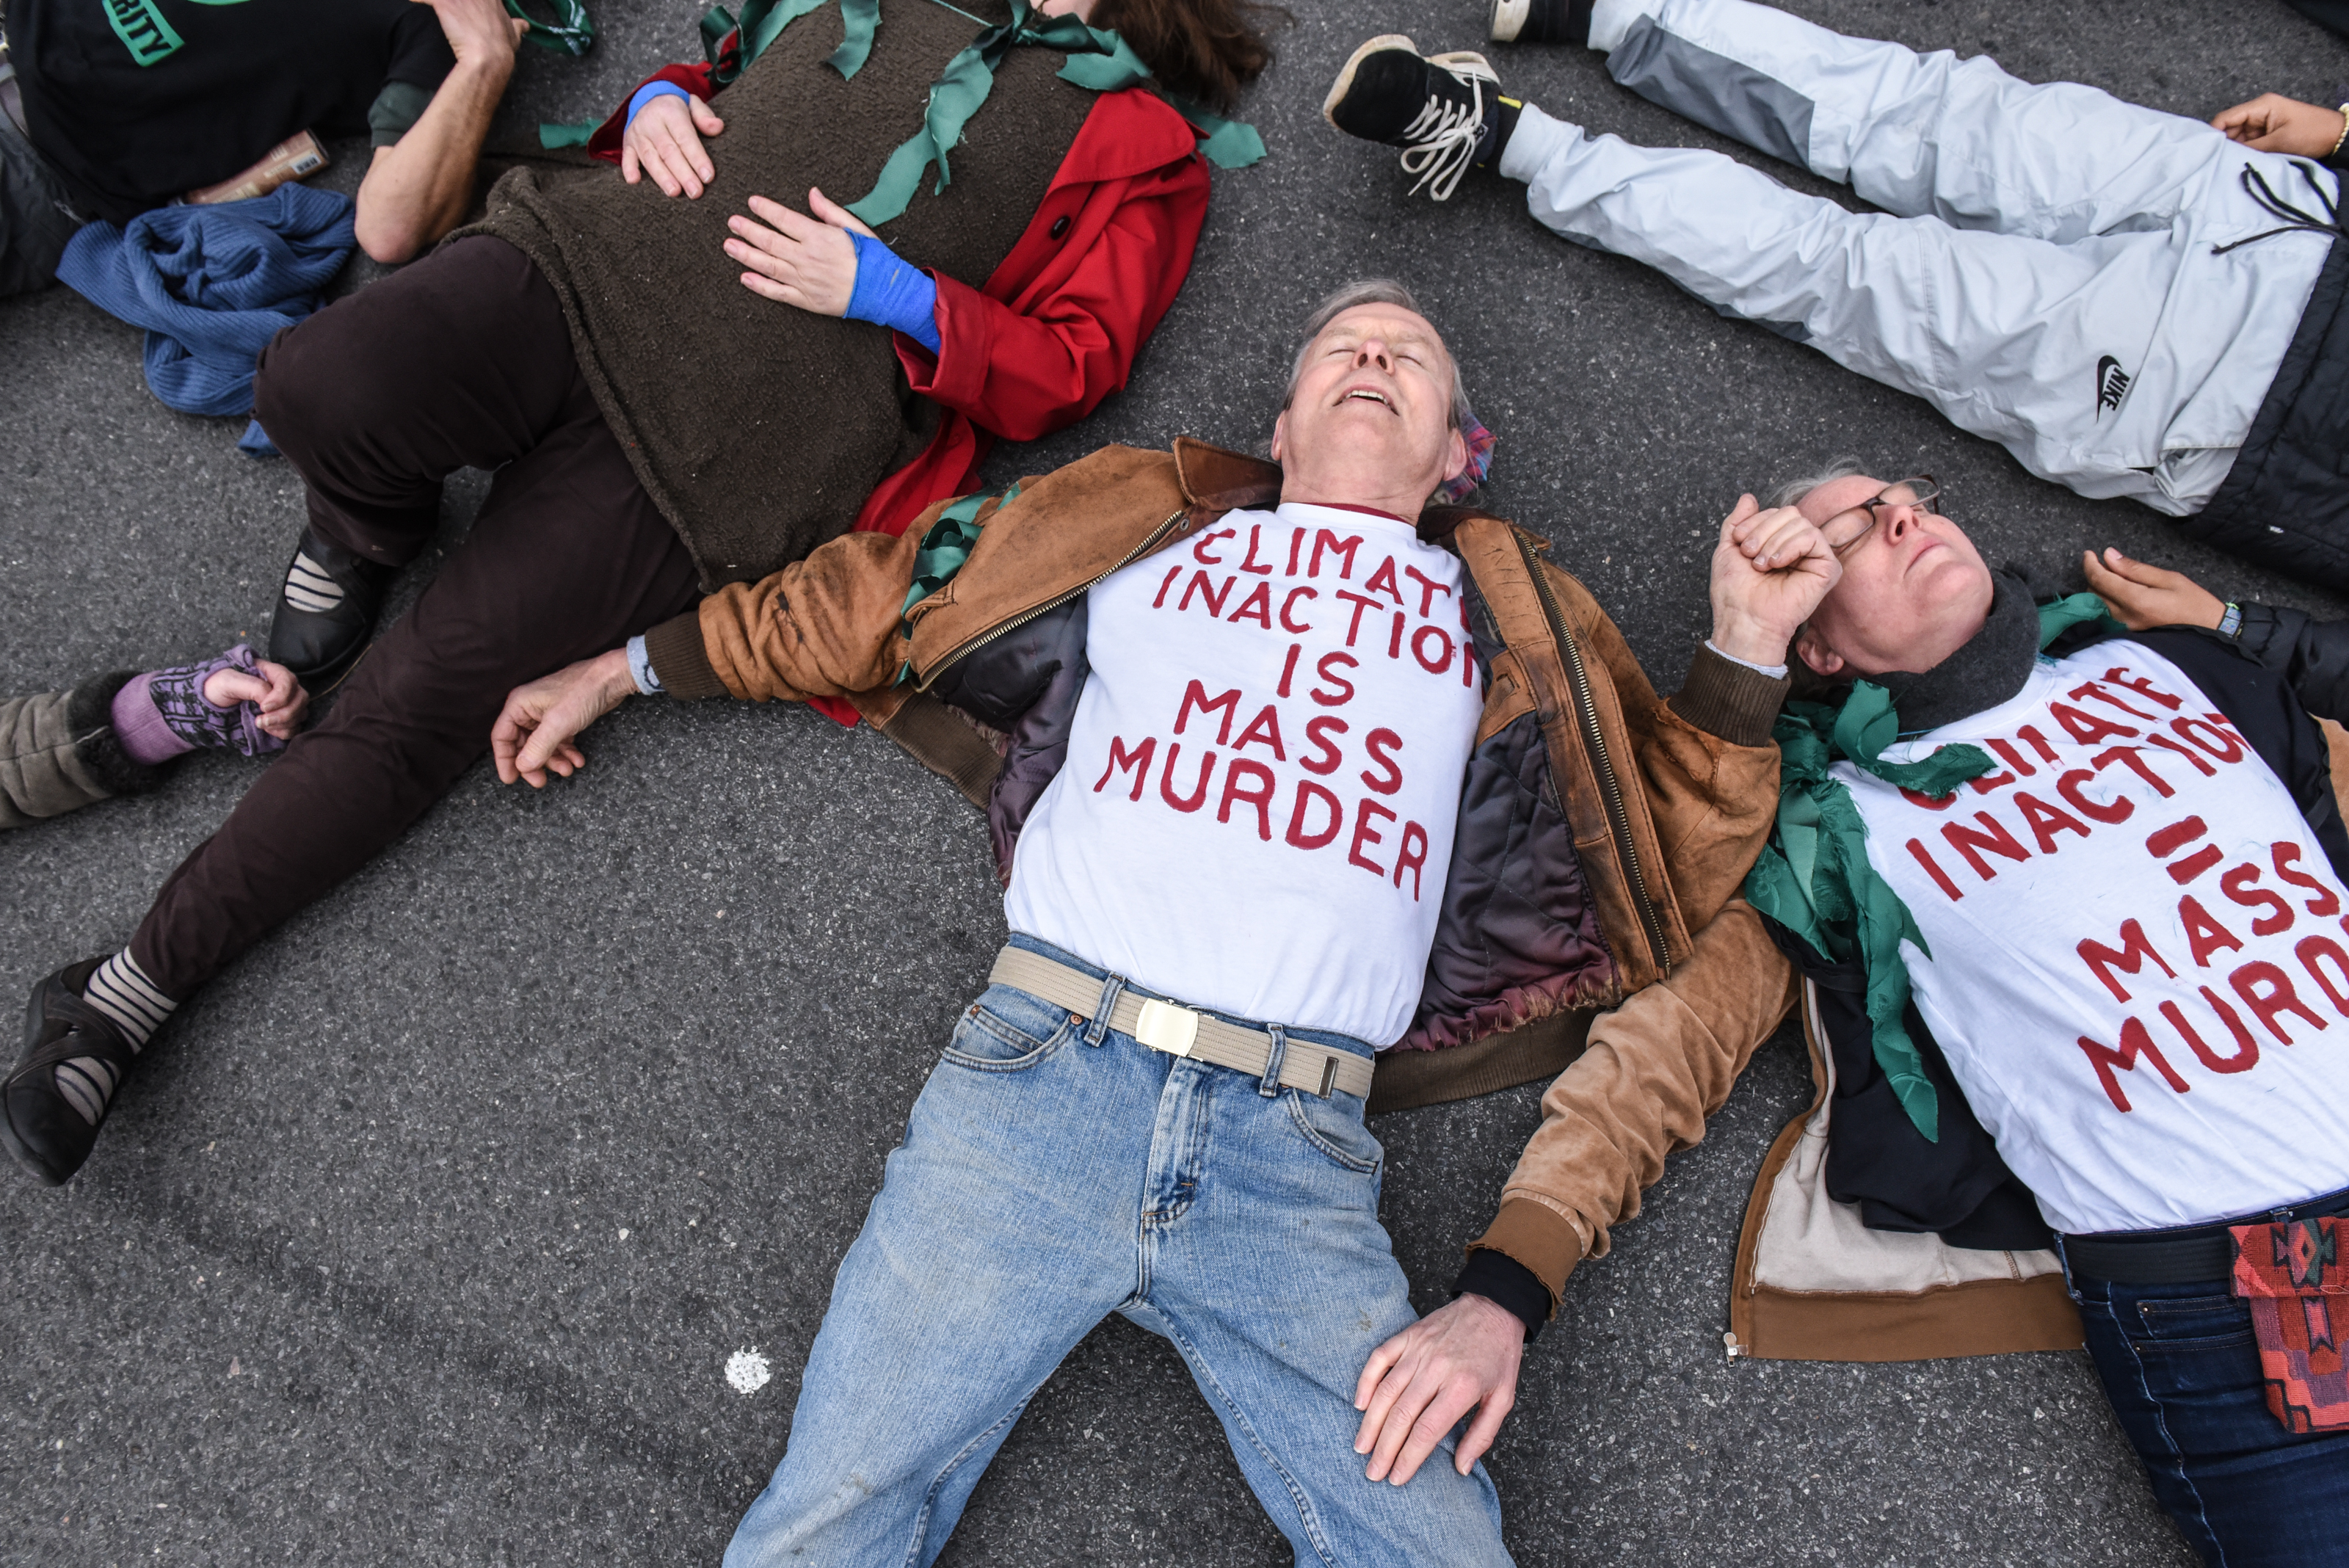 NEW YORK, NY - APRIL 17: People participate in a die-in direct action with a group protest organization called Extinction Rebellion on April 17, 2019 in New York City. The activists are demanding governments declare a climate emergency to combat pollution. (Photo by Stephanie Keith/Getty Images)